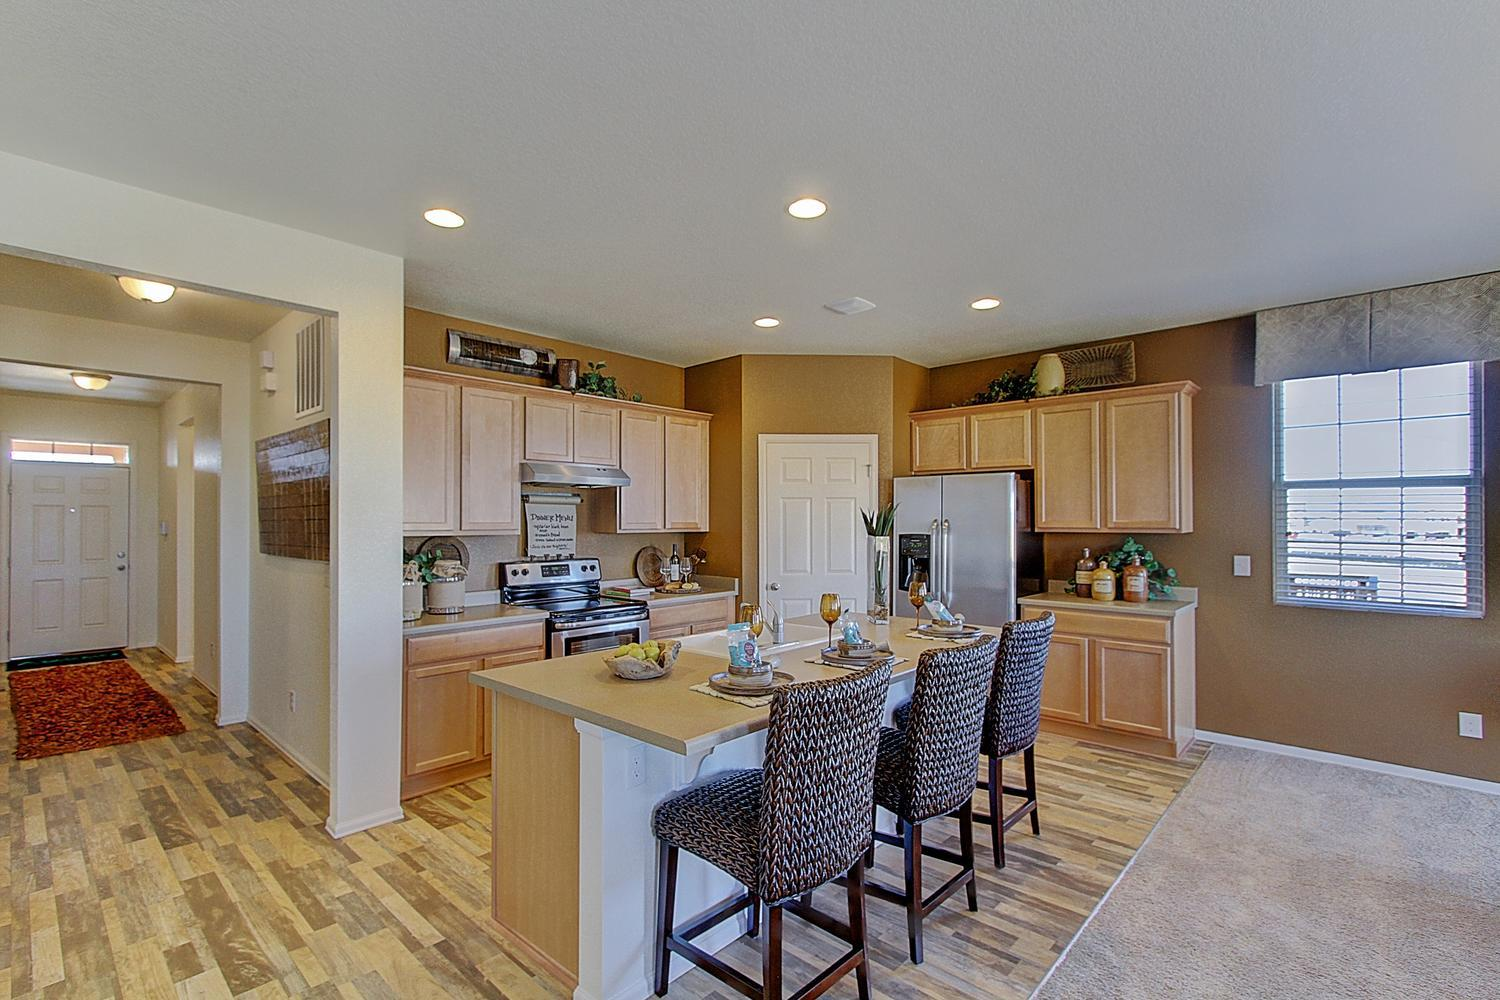 Kitchen featured in the NEUVILLE By D.R. Horton in Denver, CO